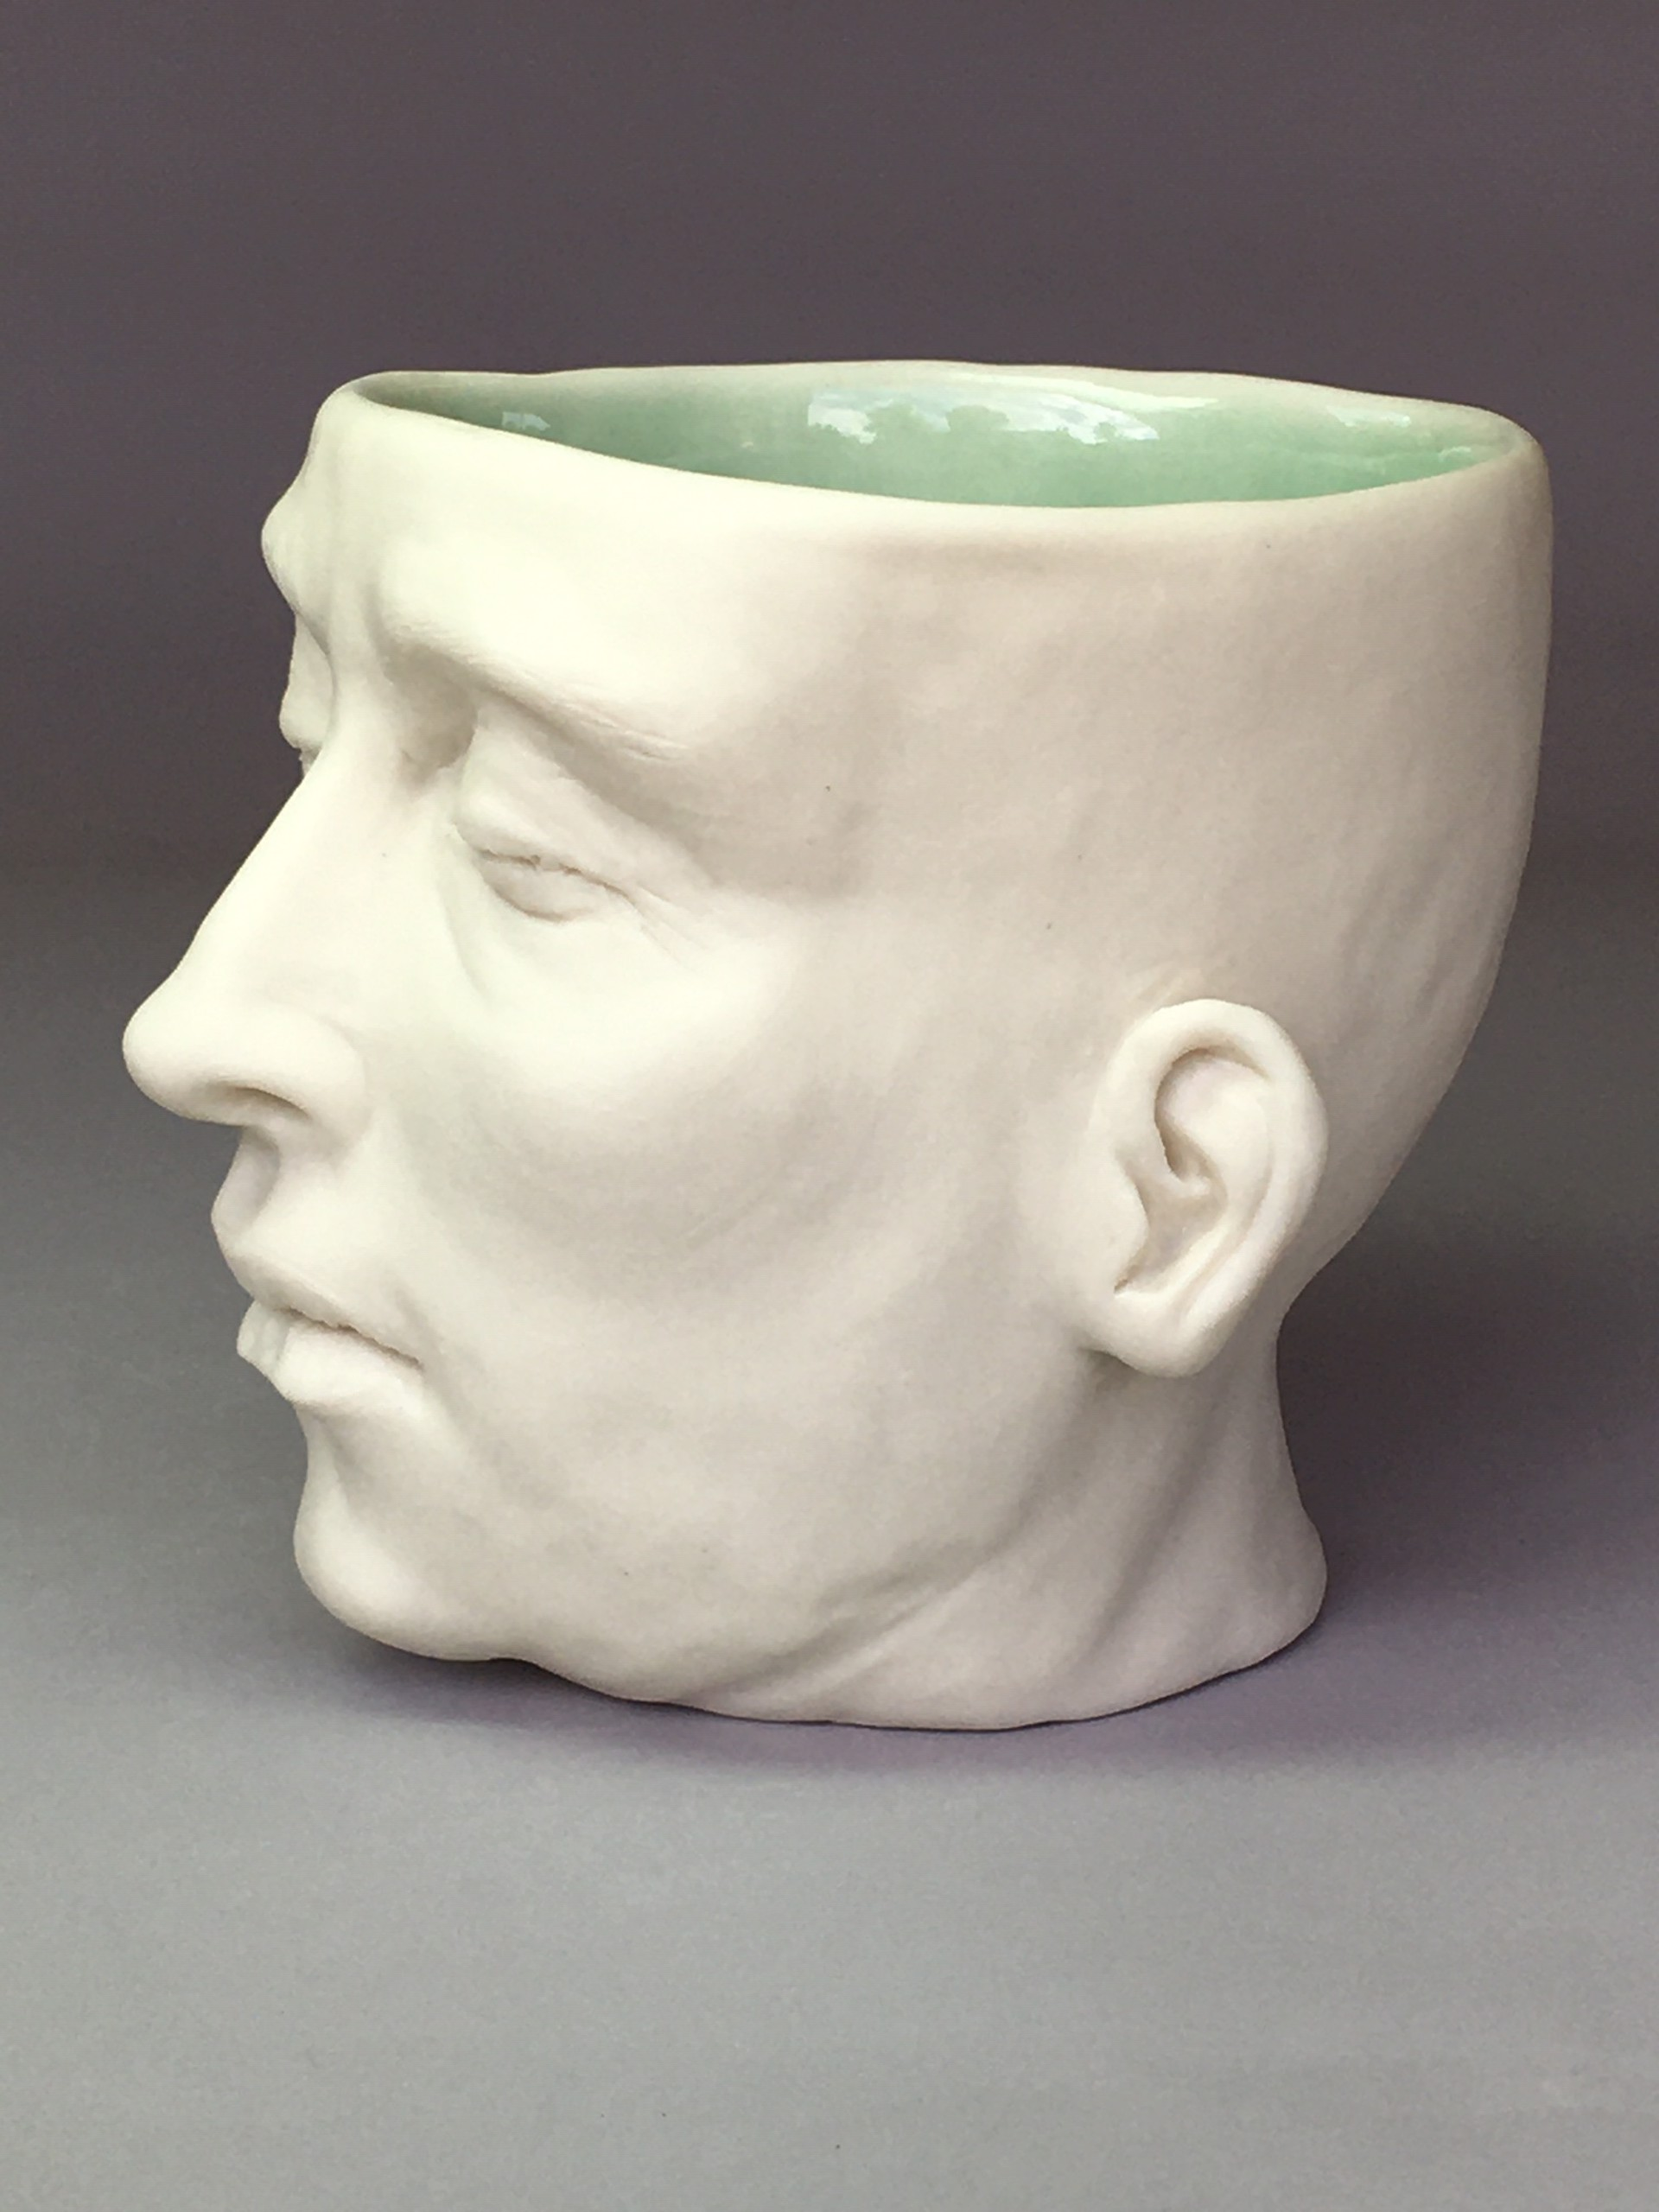 """""""Moth Cup II"""" (right side low, light green celadon, eyes closed) by Adrian Arleo"""